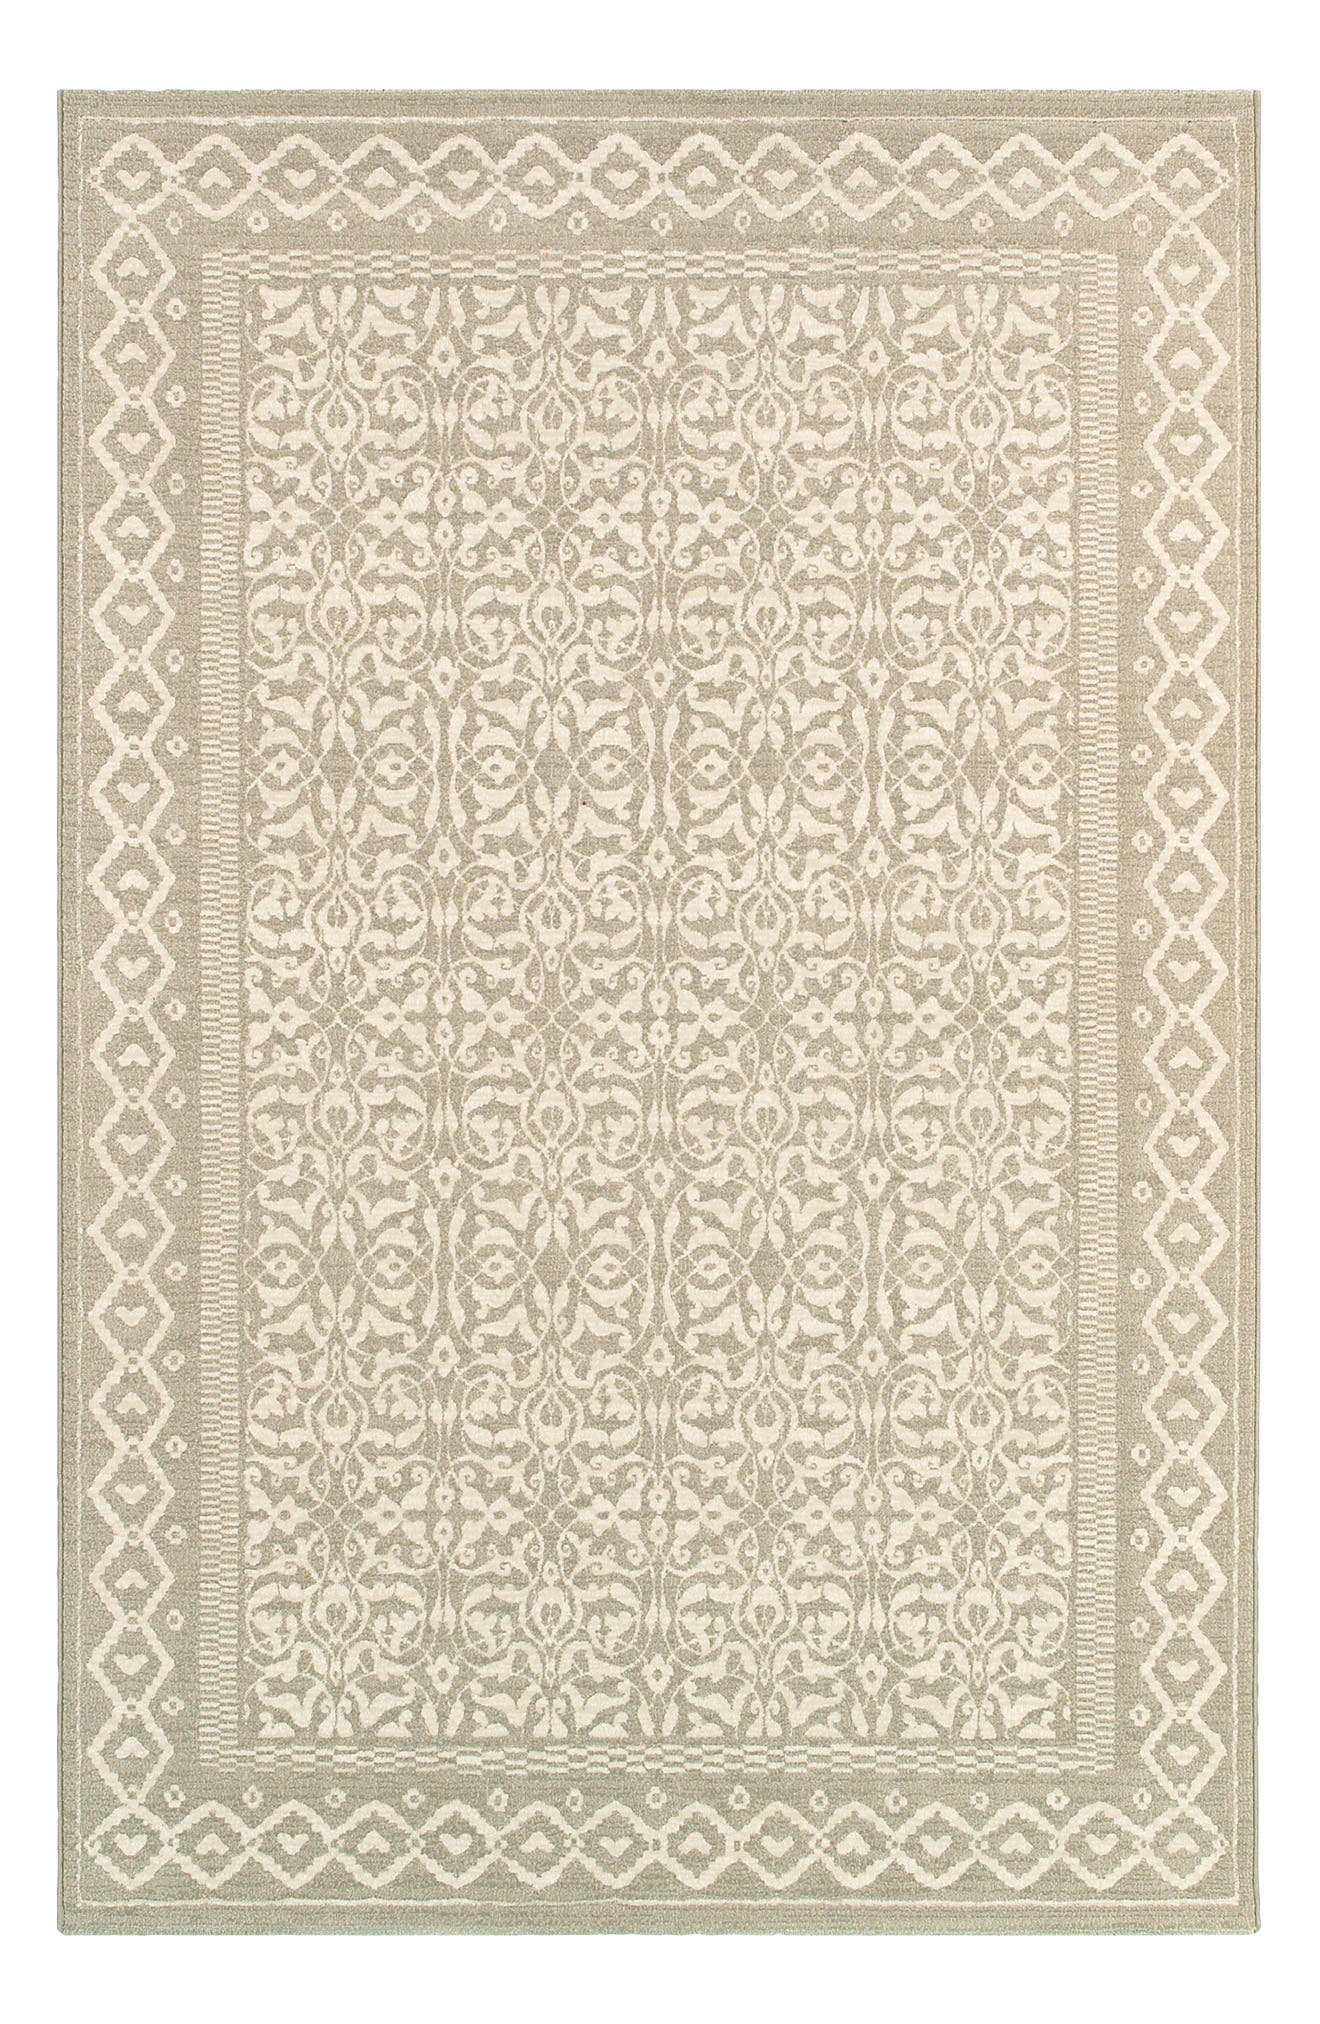 Ornate patterns define a versatile rug woven from fade-resistant polypropylene, making it great for high-traffic areas both inside and outside. Style Name: Couristan Ibiza Indoor/outdoor Rug. Style Number: 5366879. Available in stores.